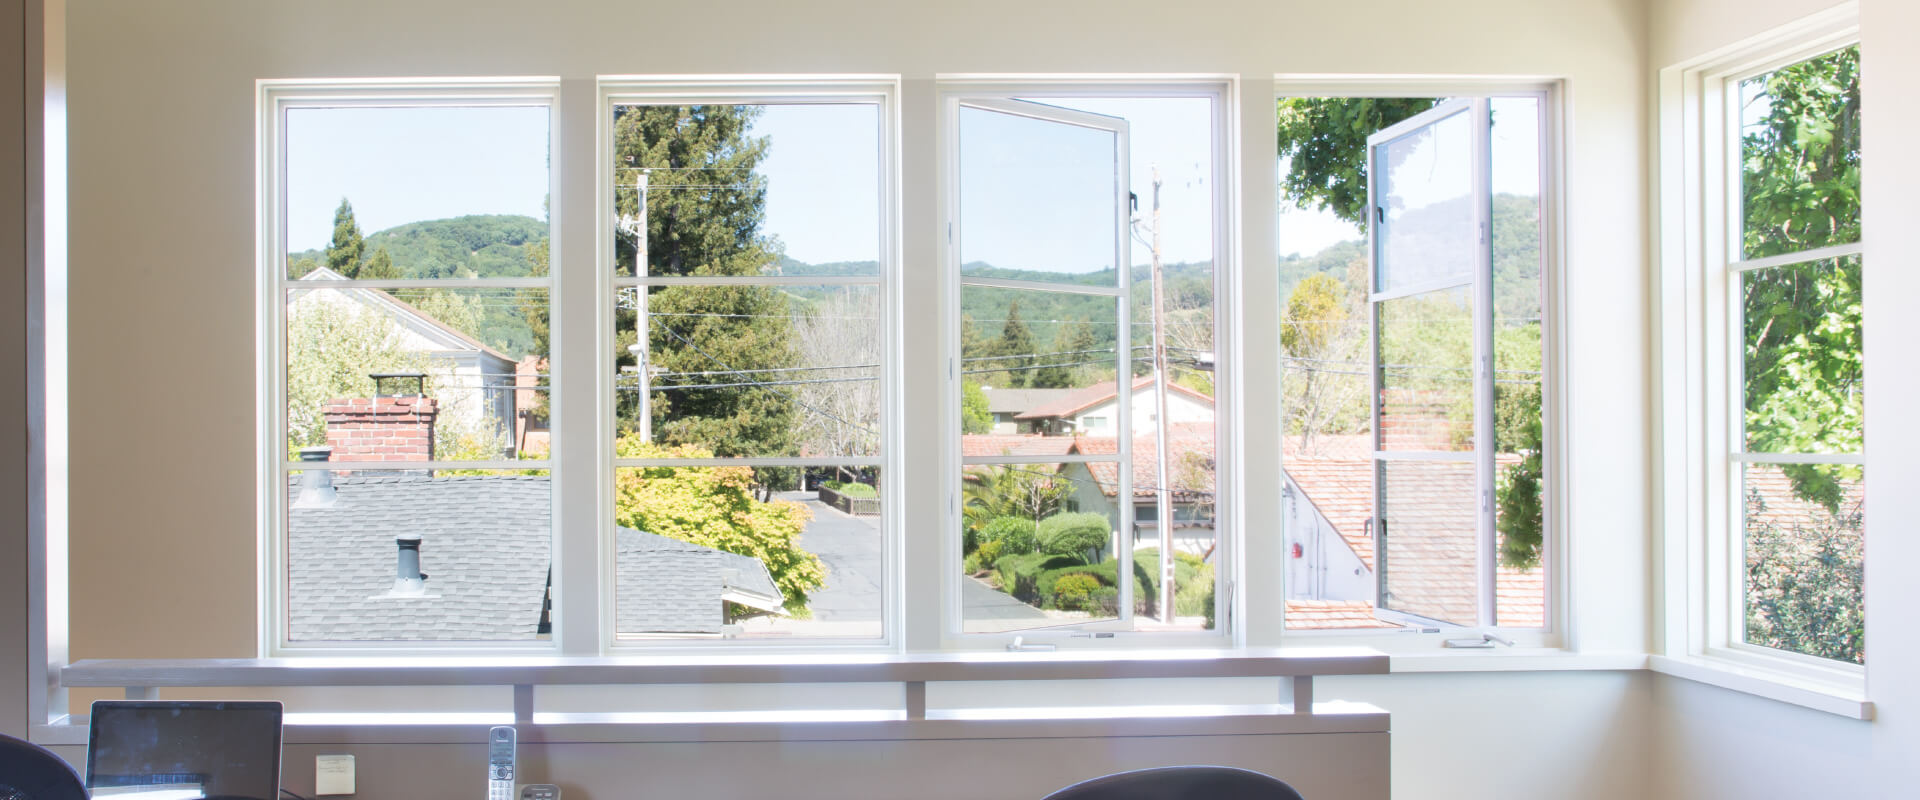 Y613 VistaLuxe Casements hero - What Are Casement Windows?